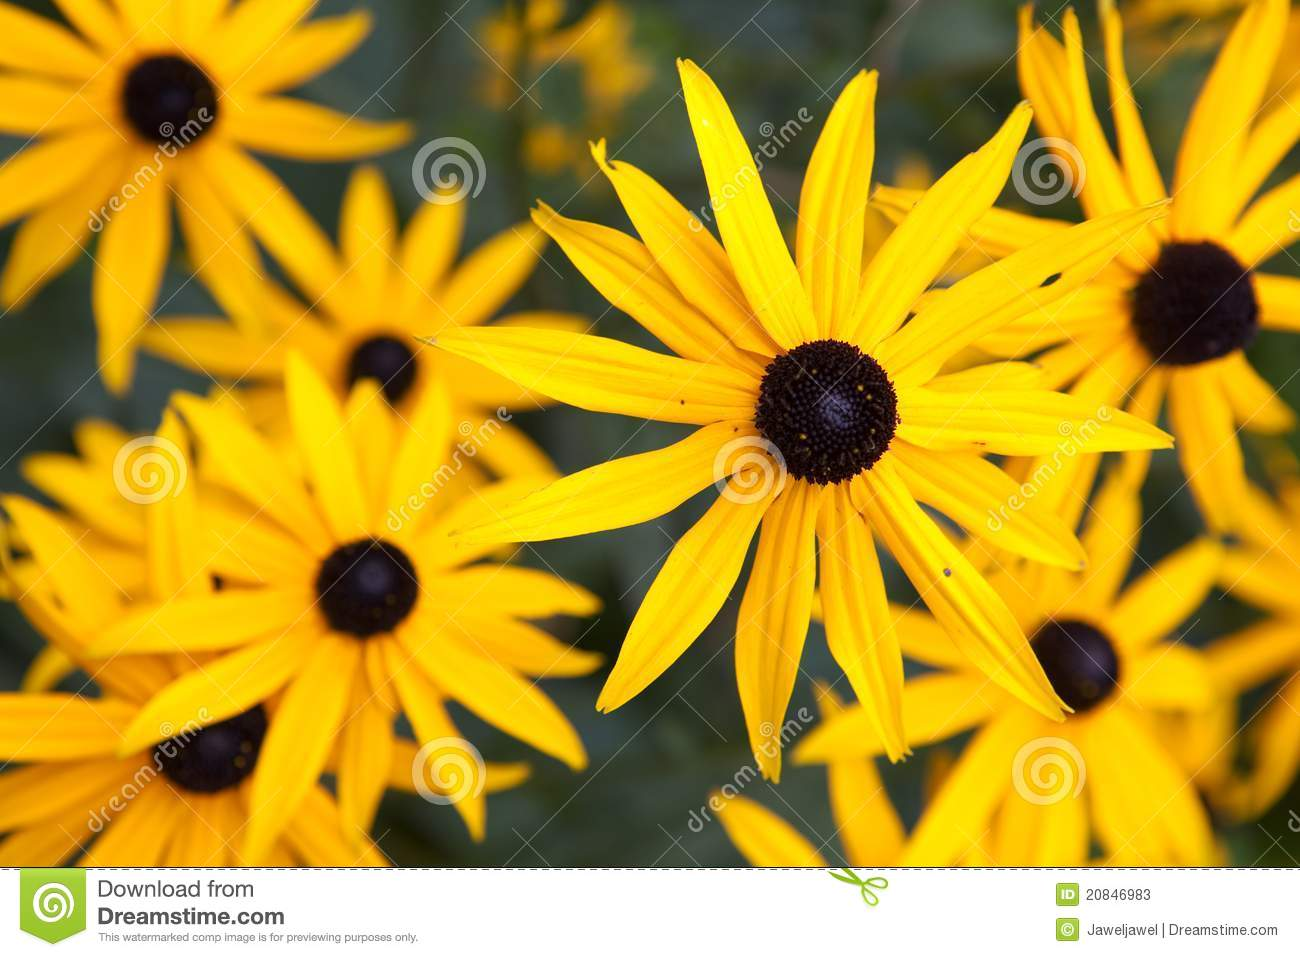 Black eyed susan stock photos image 20846983 Black eyed susans